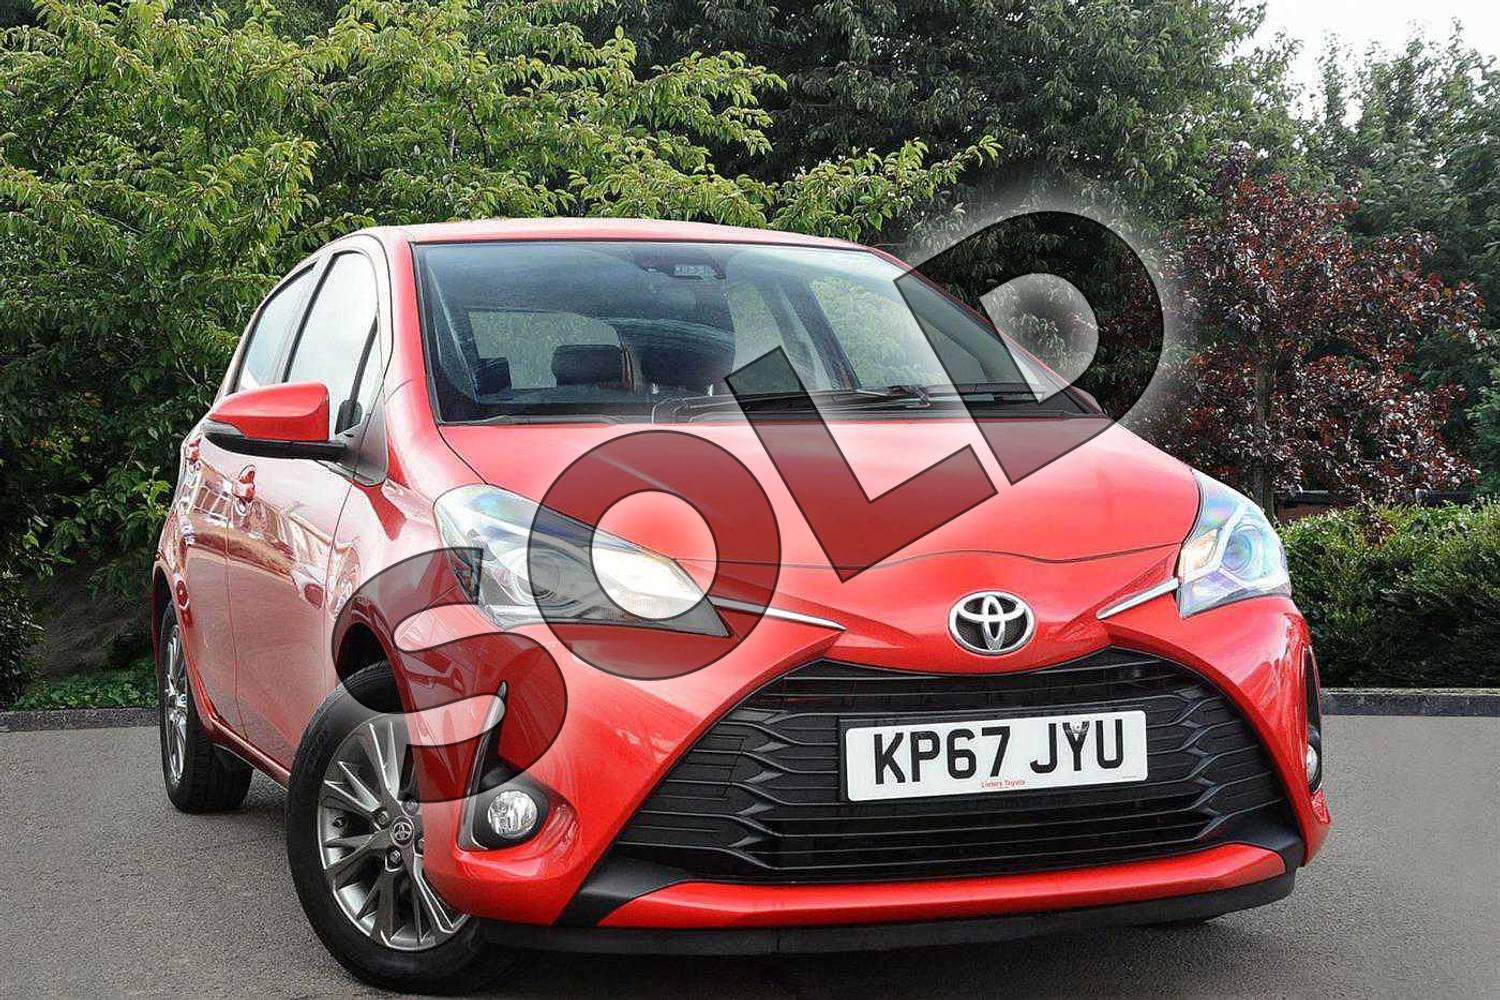 2017 Toyota Yaris Hatchback 1.5 VVT-i Icon 5dr in Red at Listers Toyota Nuneaton